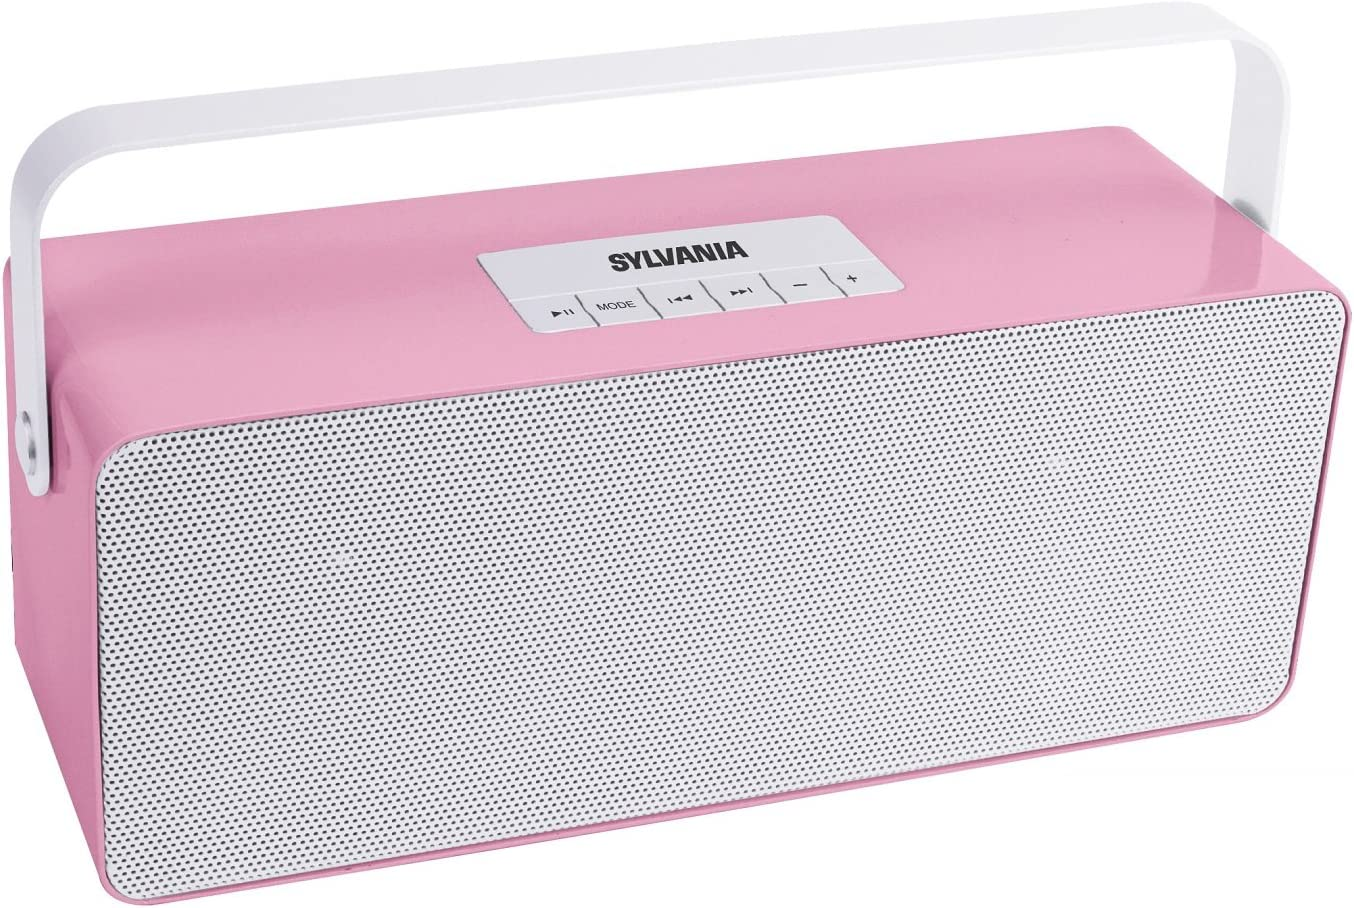 Sylvania SP672 Portable Bluetooth Speaker with Aluminium Handle Pink